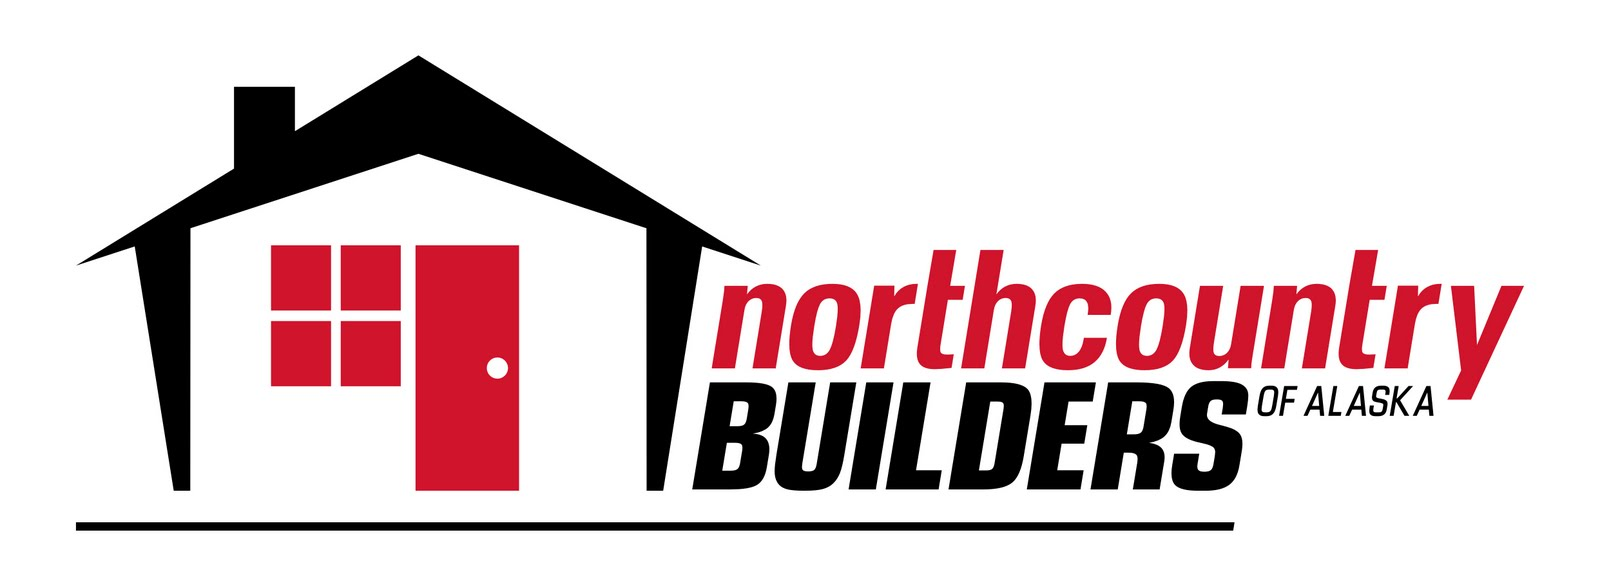 North Country Builders of Alaska